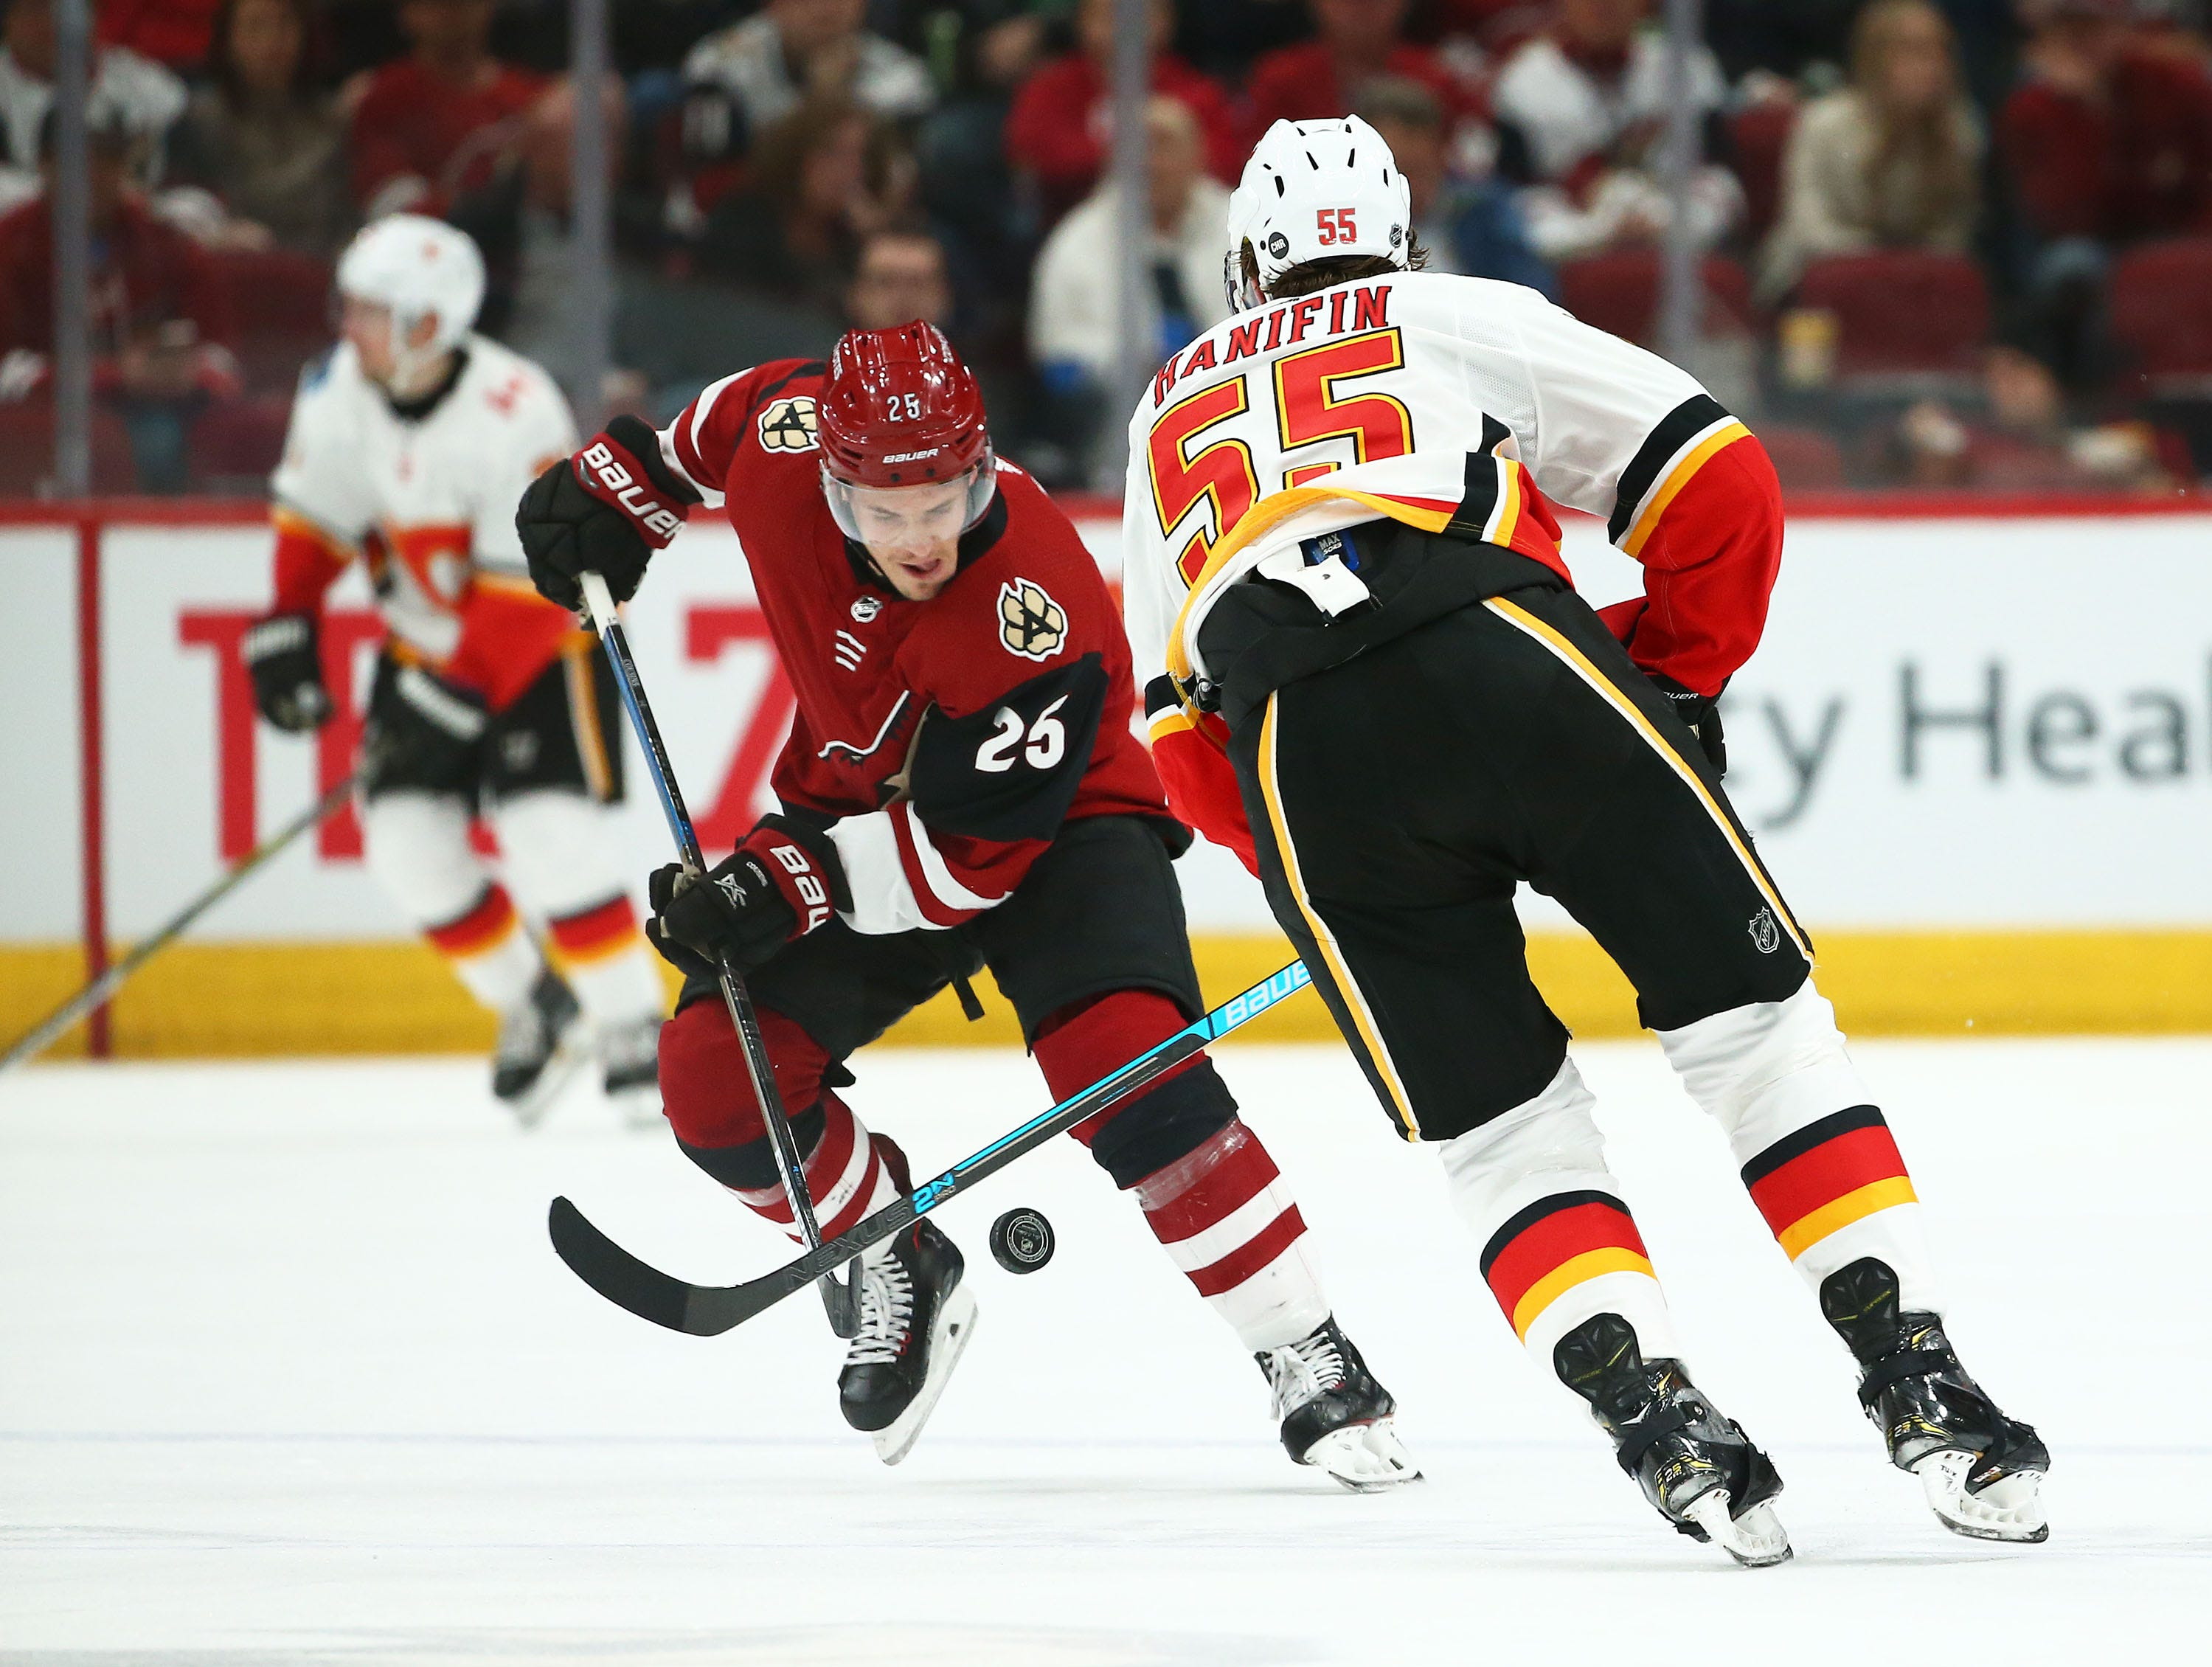 Arizona Coyotes center Nick Cousins (25) and Calgary Flames defenseman Noah Hanifin (55) battle for the puck in the second period on Mar. 7, 2019, at Gila River Arena in Glendale, Ariz.